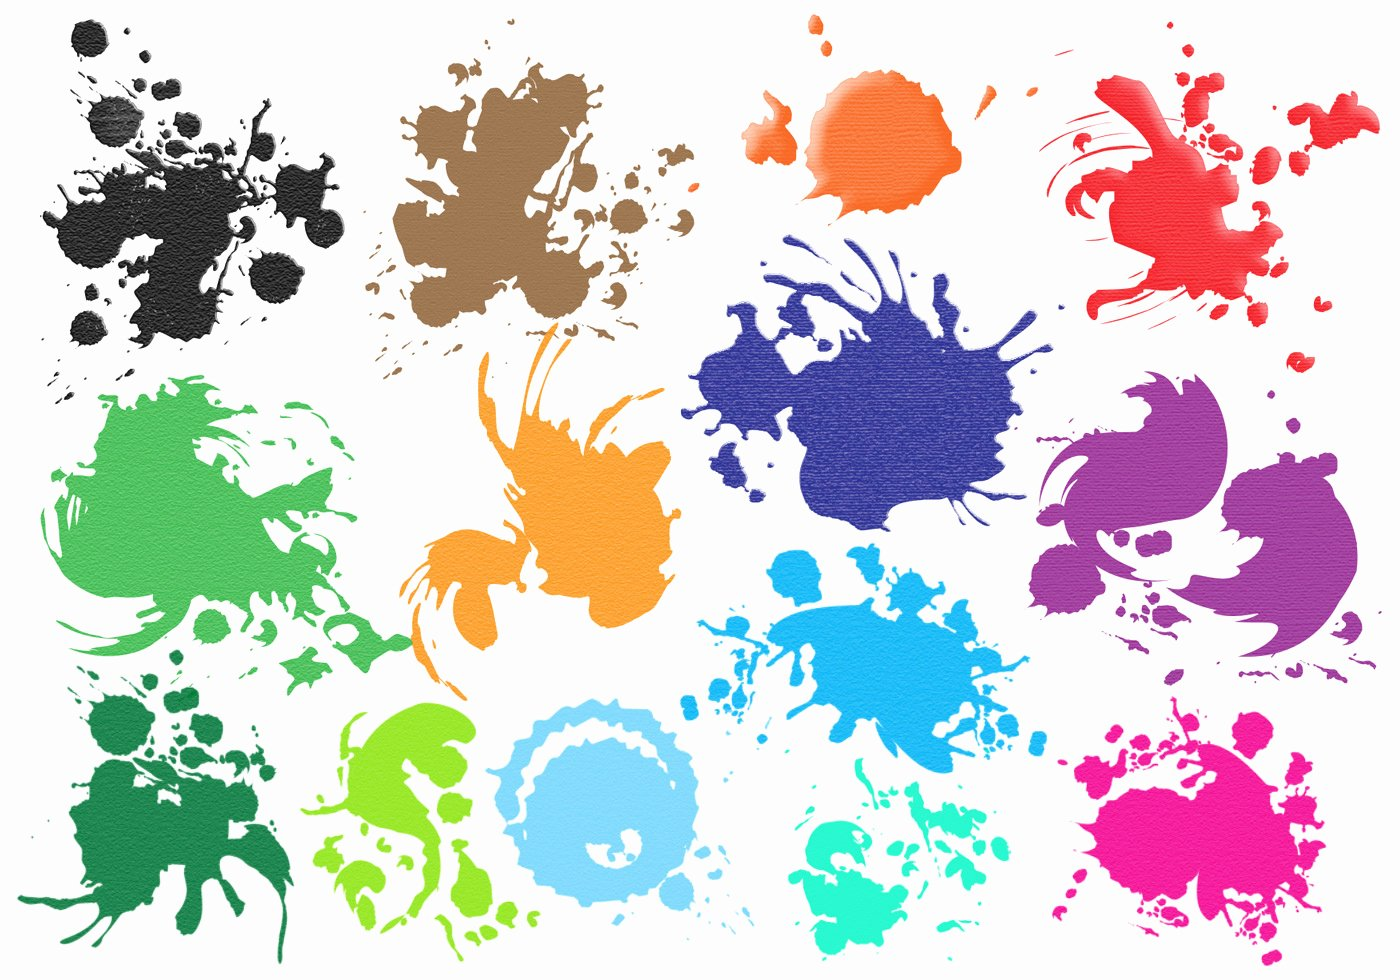 Paint Splatter Brush Photoshop Luxury Splatters Brush Set Free Shop Brushes at Brusheezy